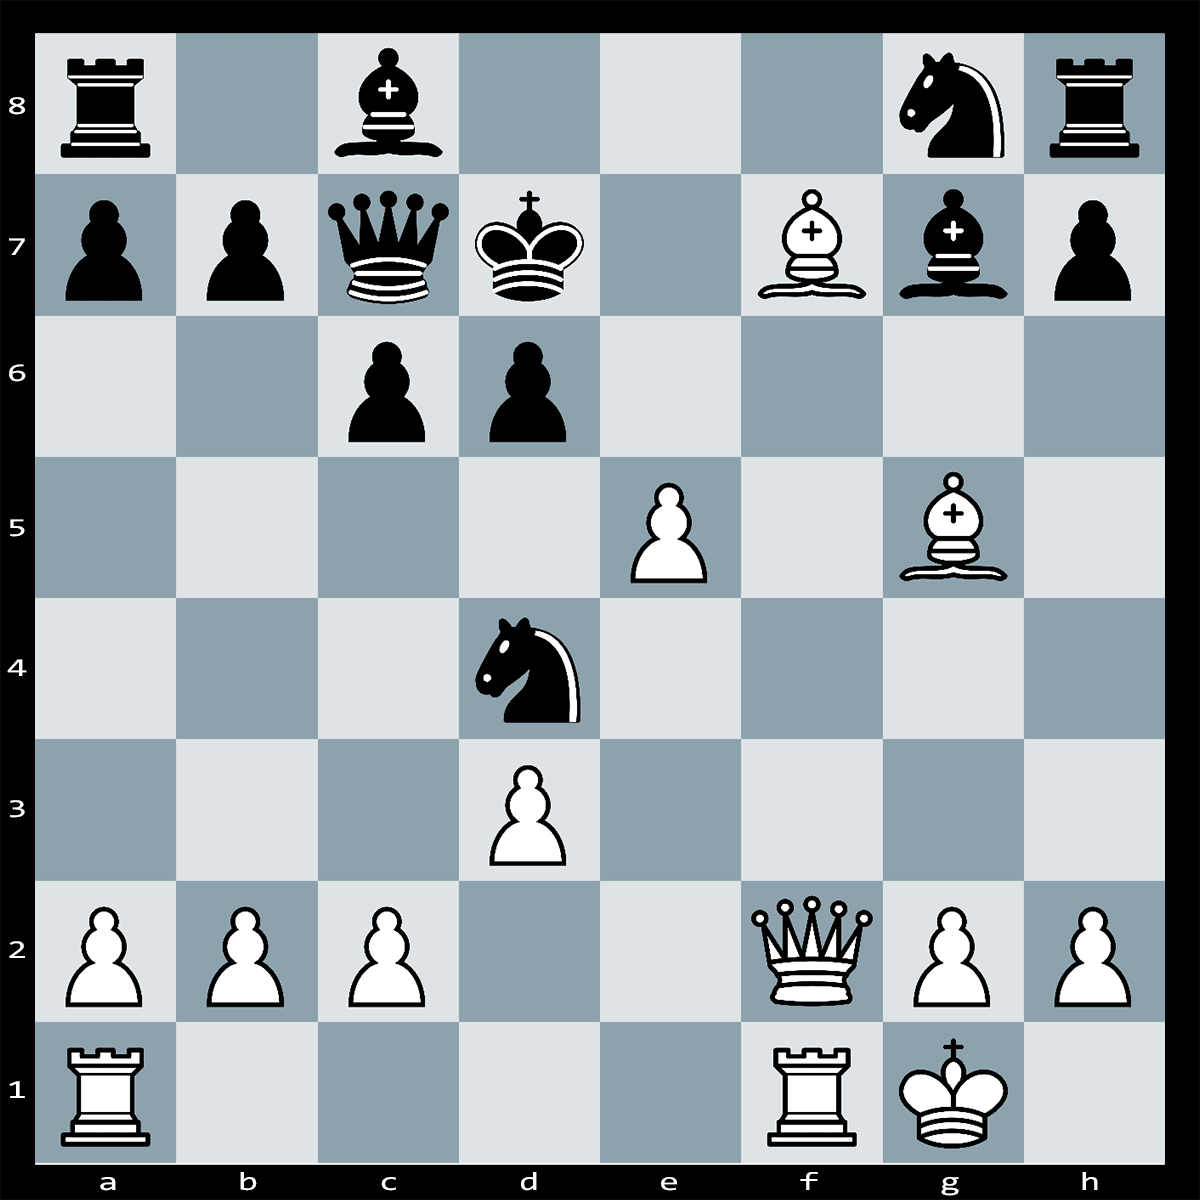 Chess Puzzle #345 | There is a powerful move that wins the game for white, can you spot it?